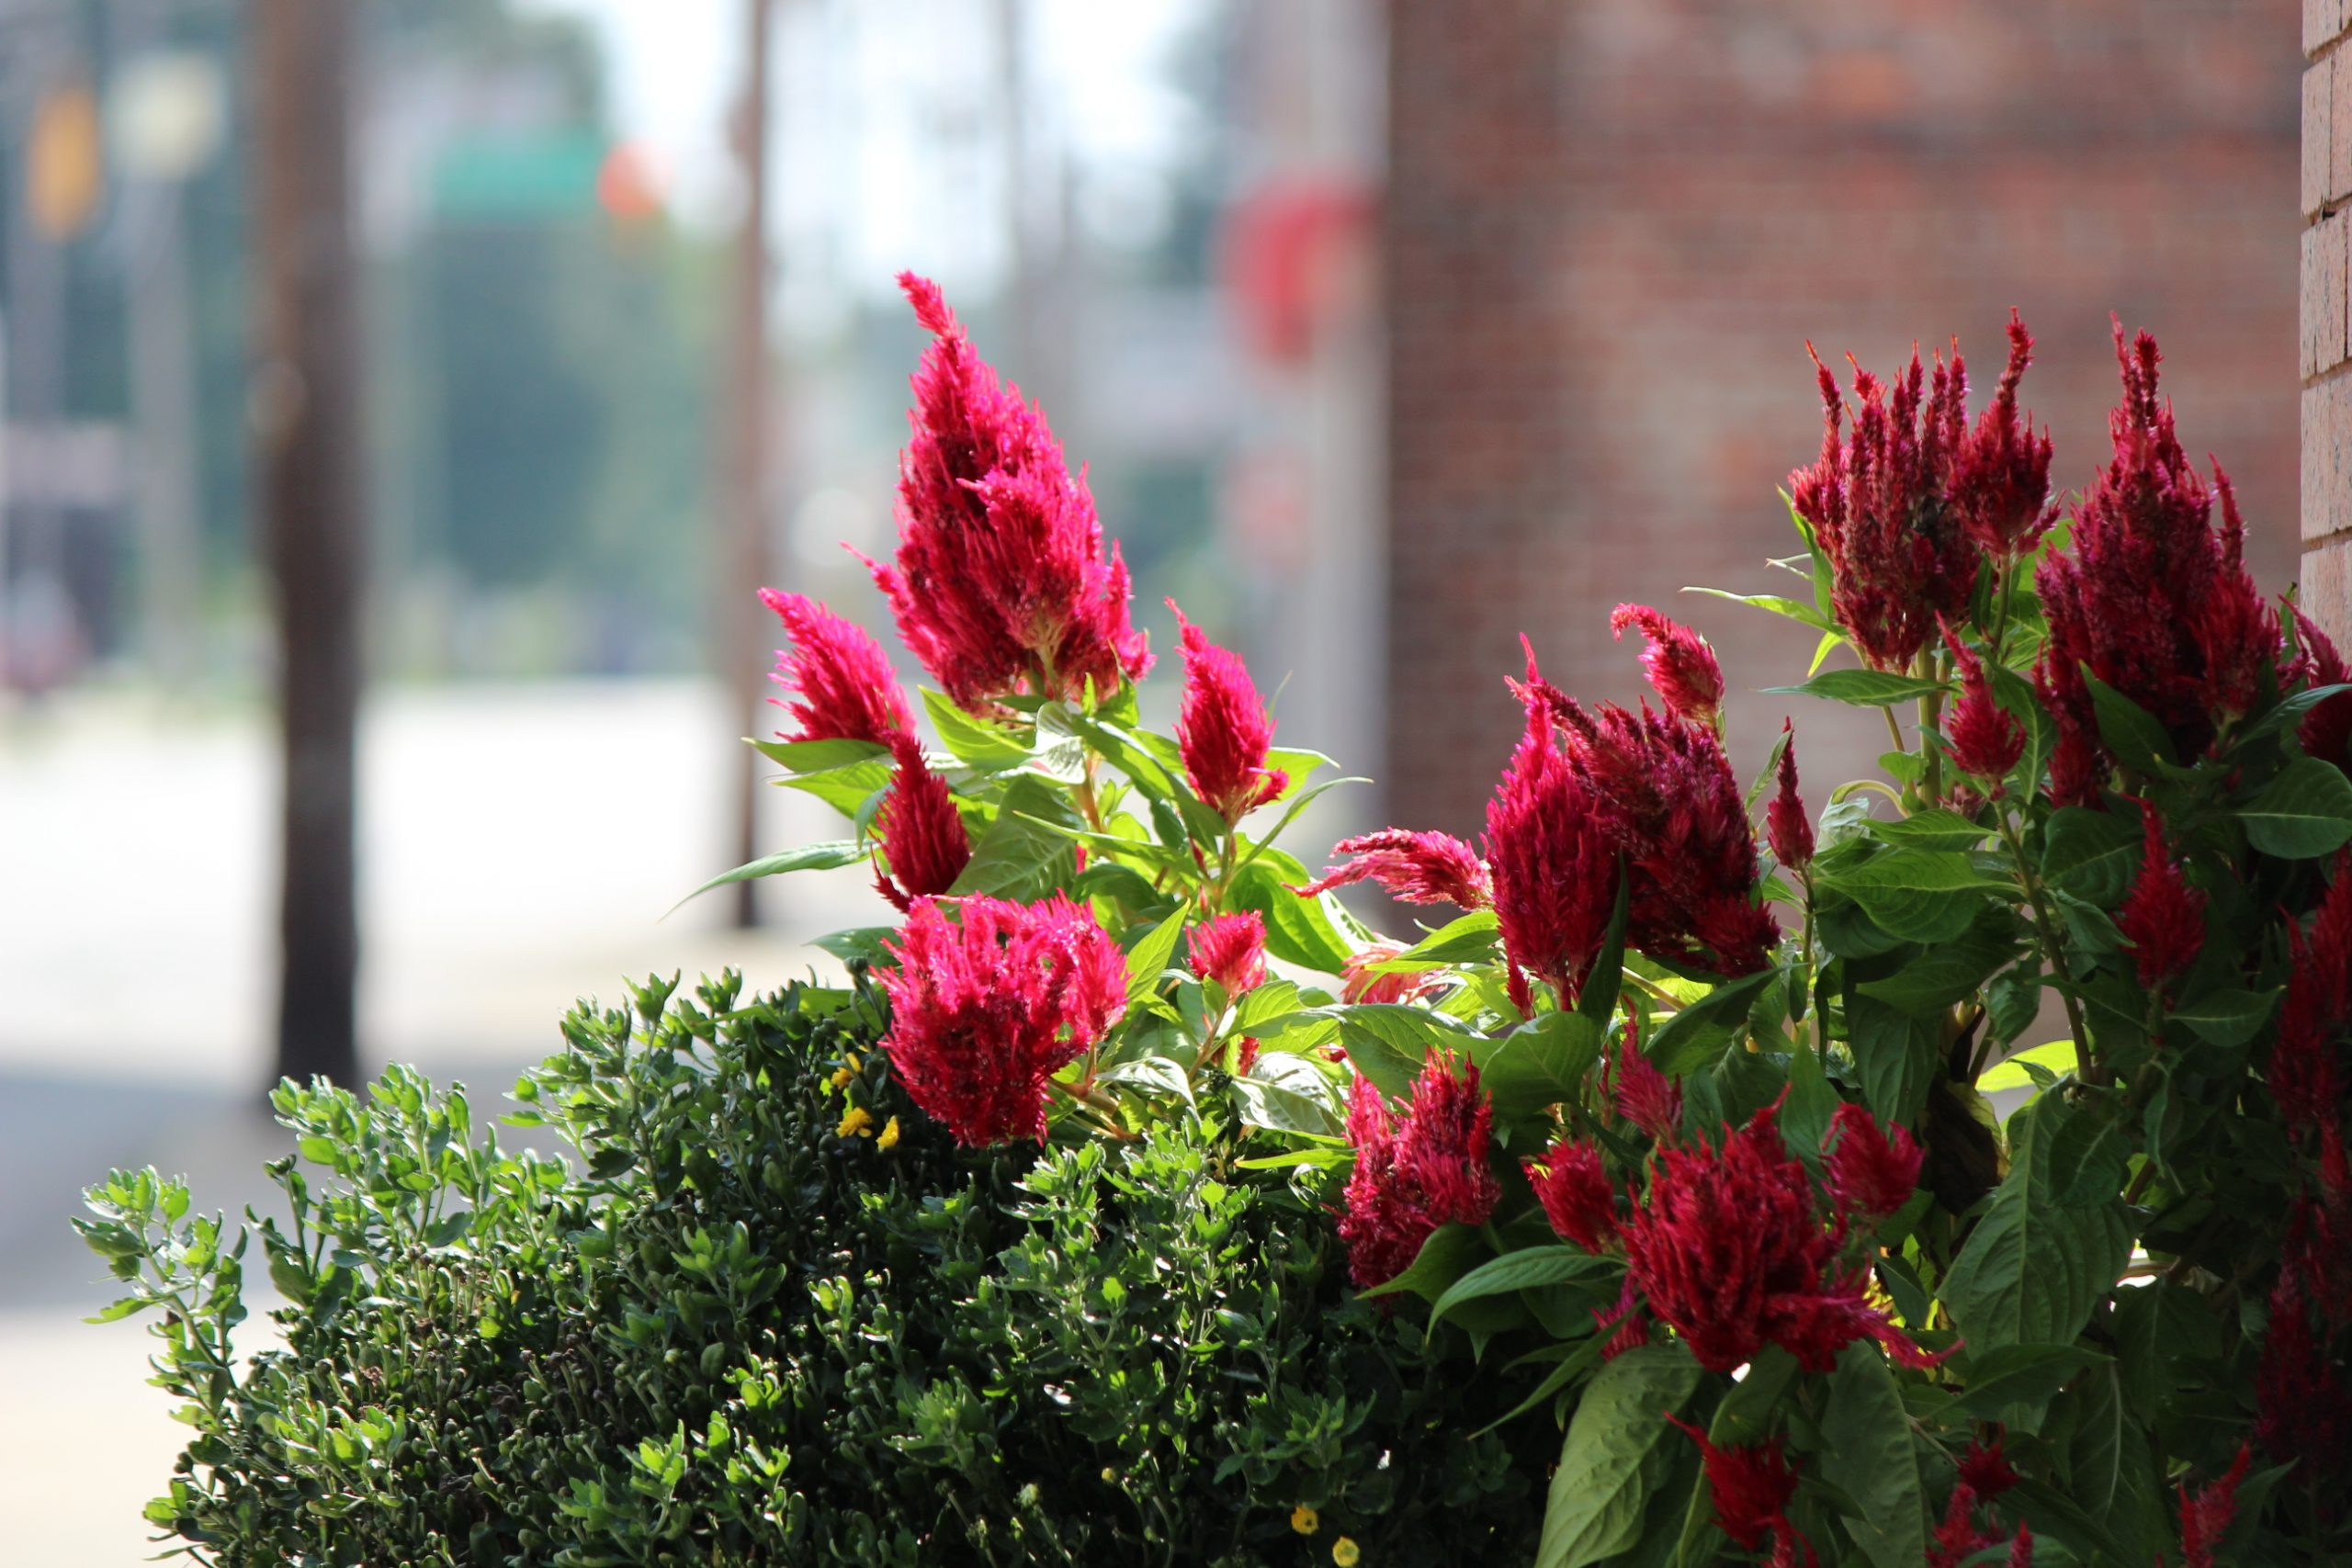 small town street flowers